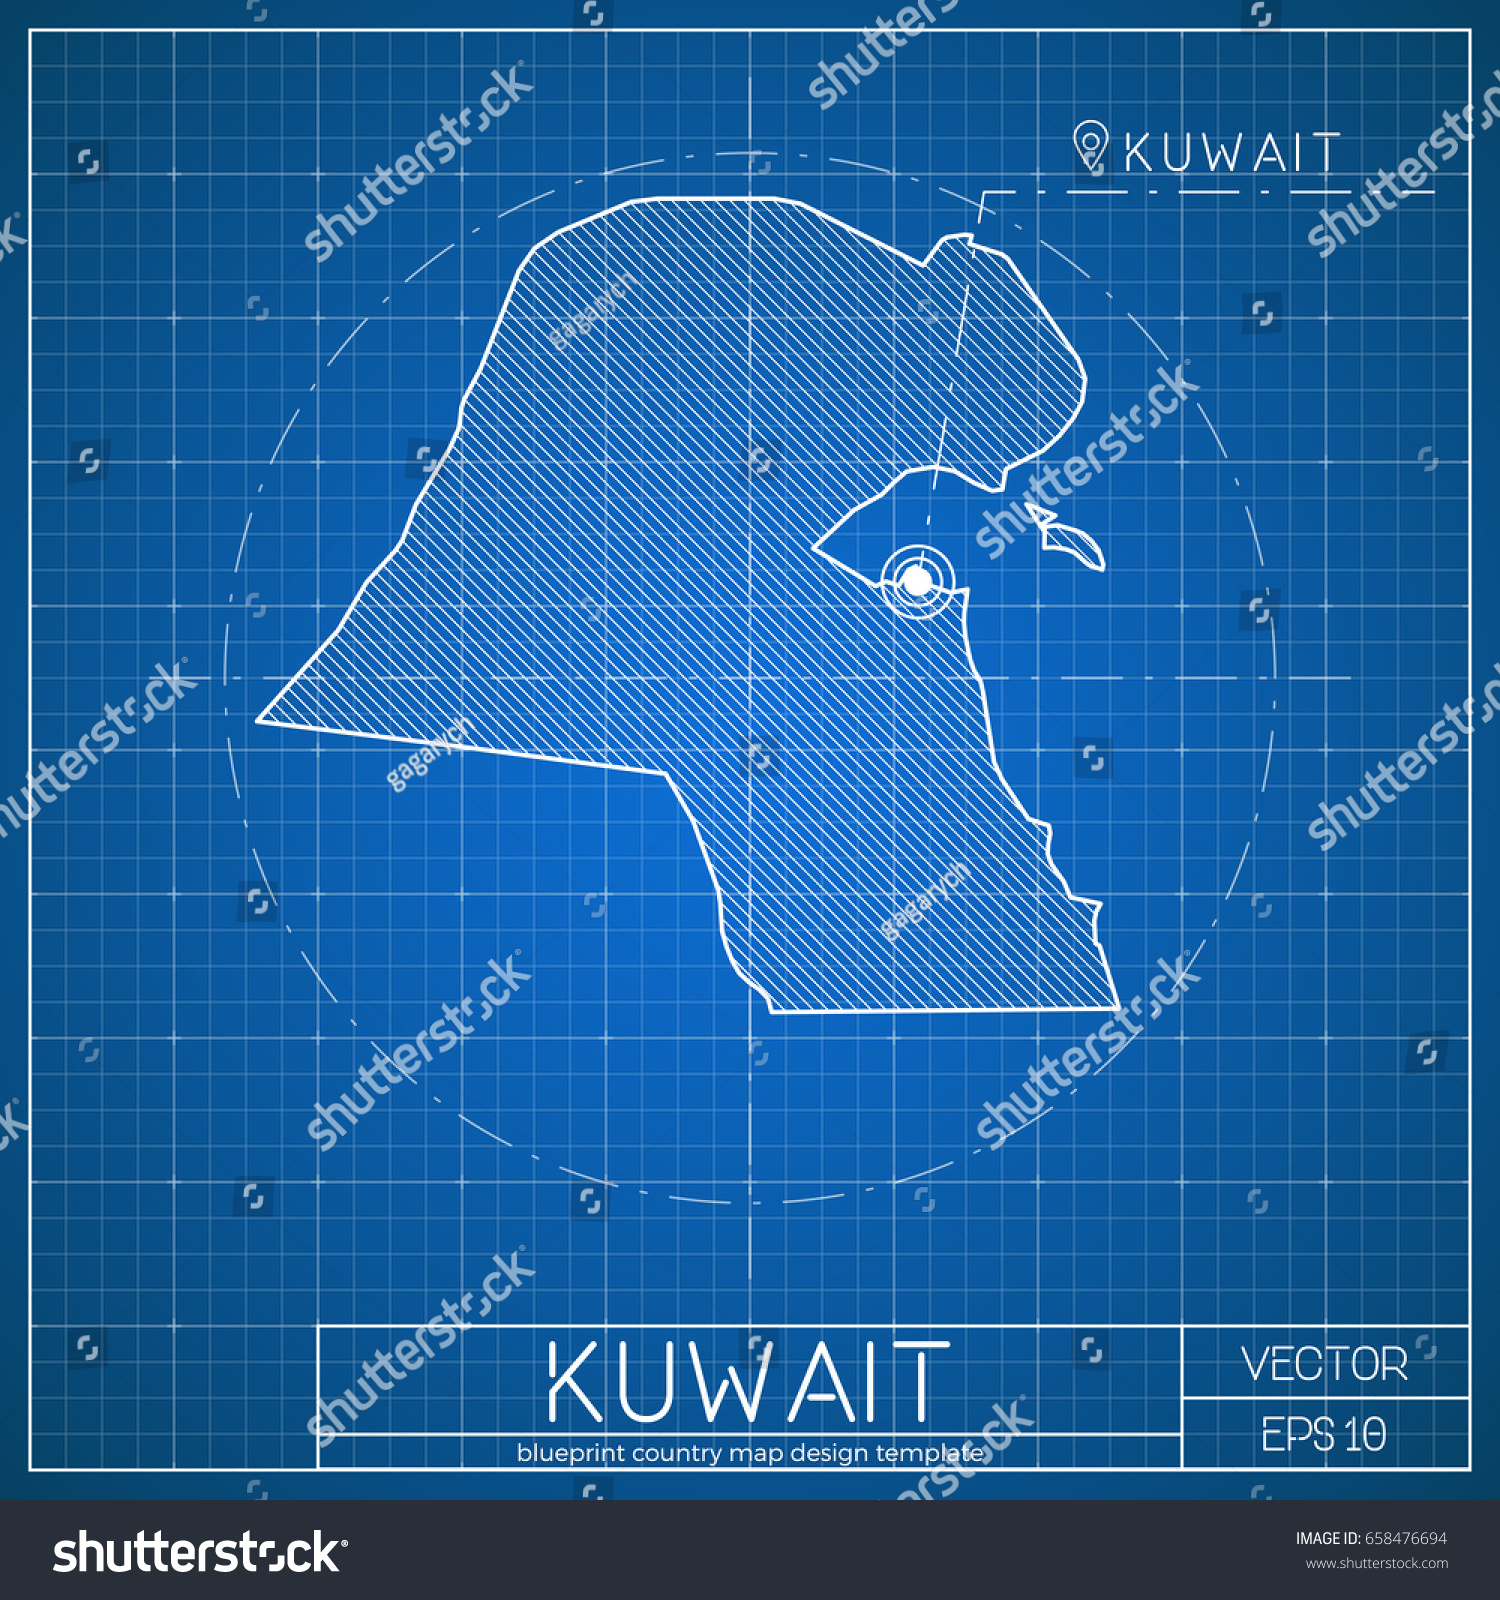 Kuwait blueprint map template capital city stock vector 658476694 kuwait blueprint map template with capital city kuwait city marked on blueprint kuwaiti map malvernweather Gallery